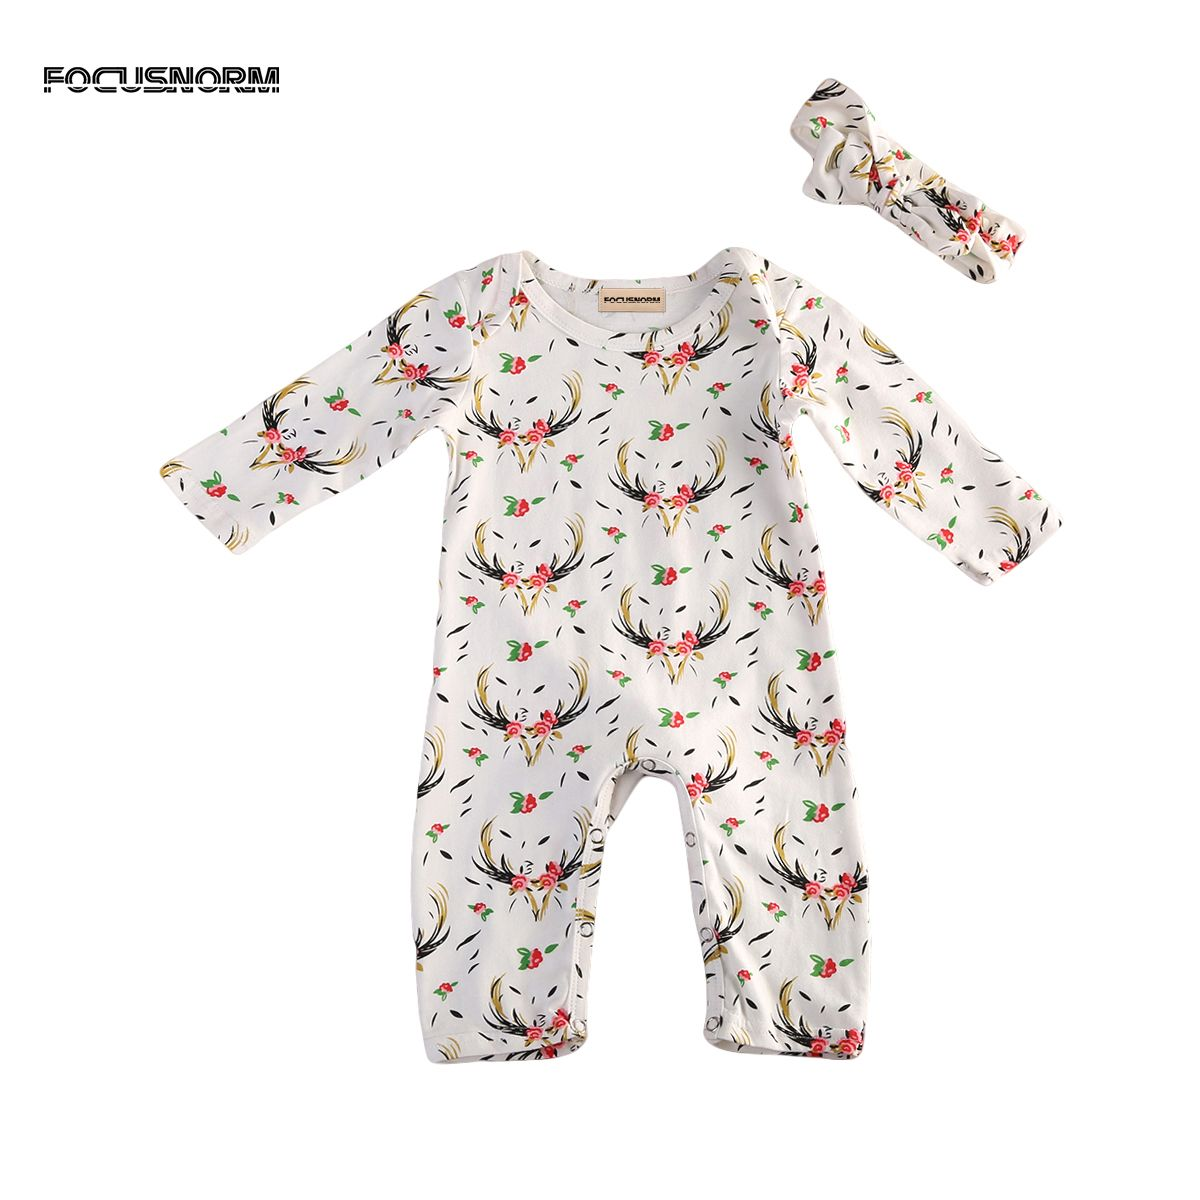 Cute Christmas Floral Romper Jumpsuit Tag a friend who would love